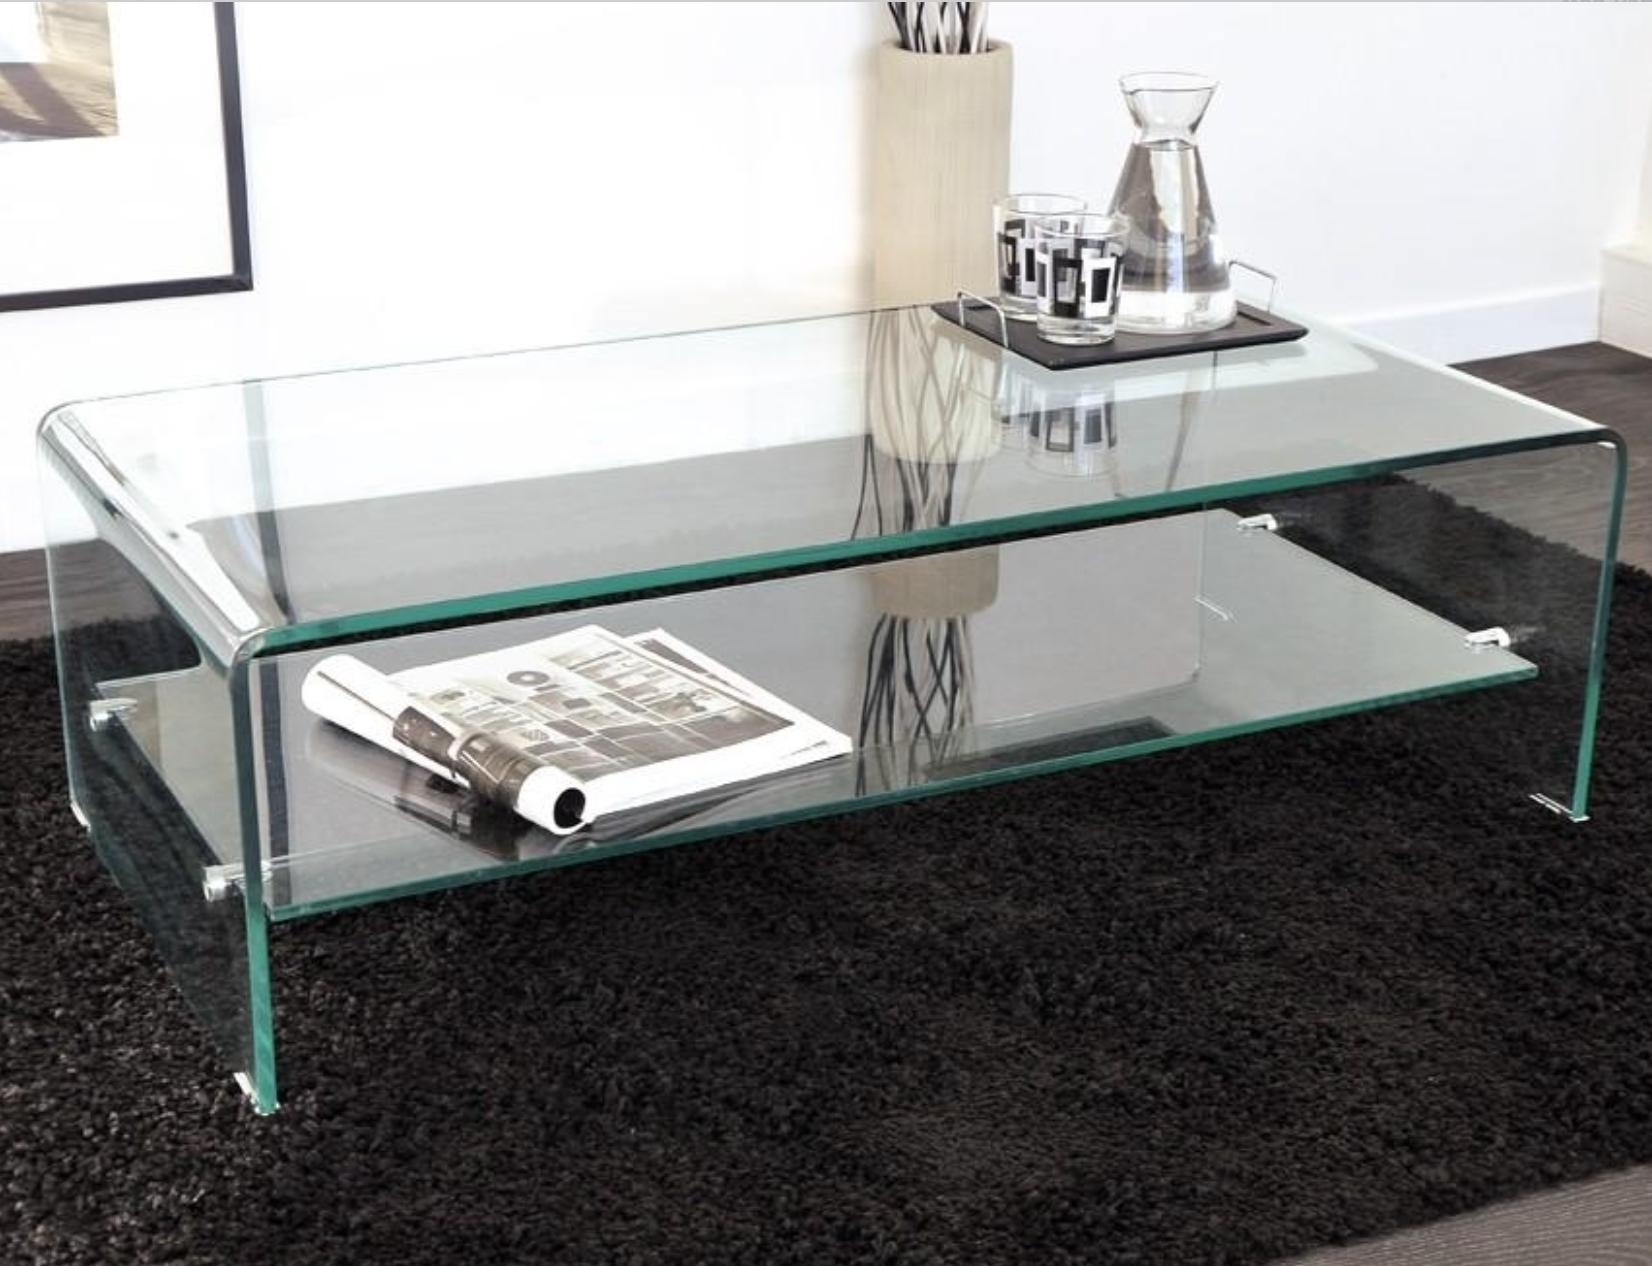 Table basse verre tremp stella for Table haute de salon